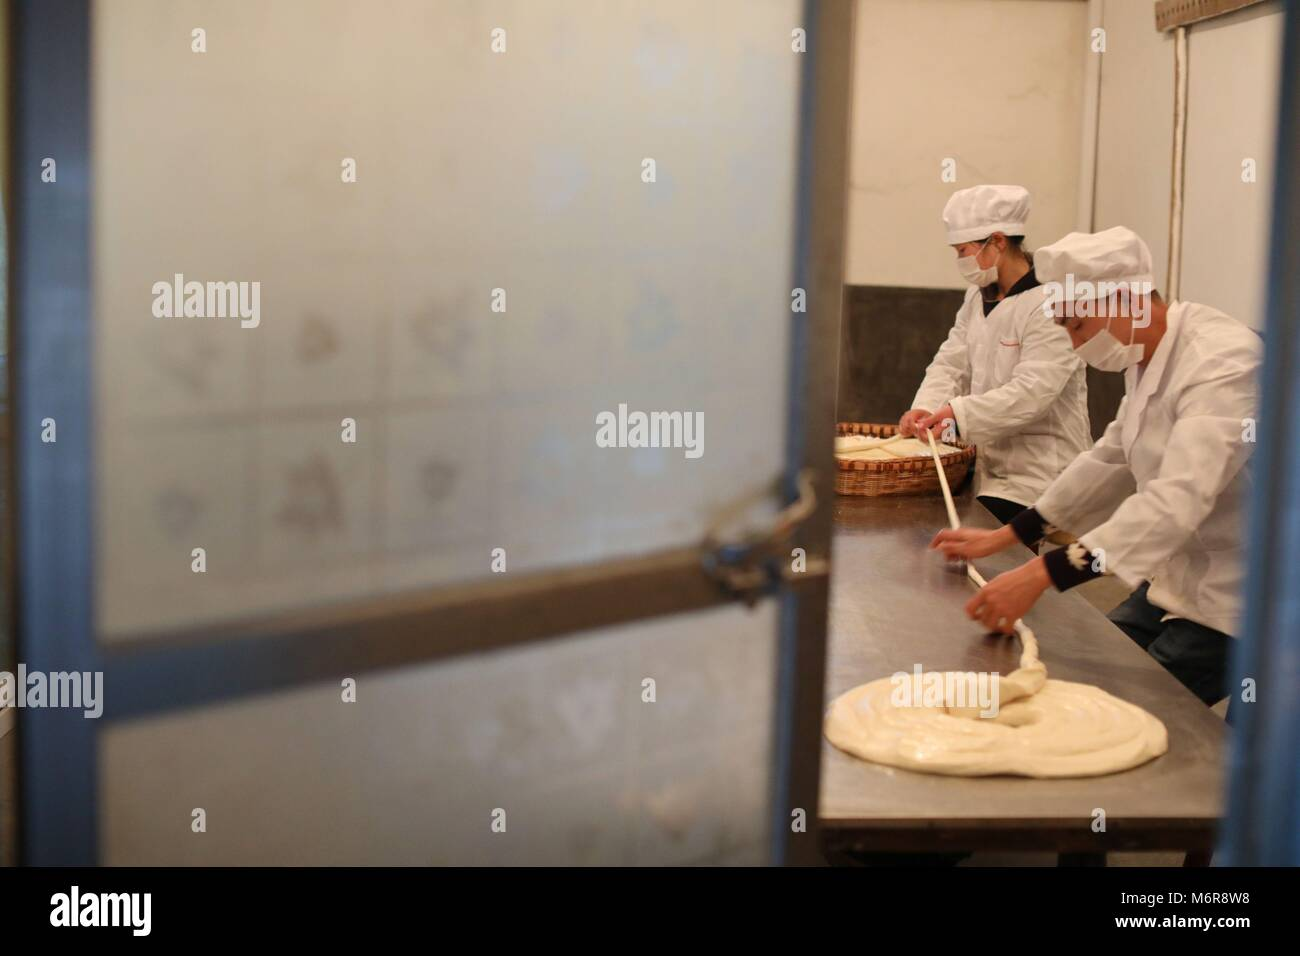 Suiyang. 6th Mar, 2018. Workers make traditional hollow noodles at a noodle-making company in Suiyang county of Stock Photo